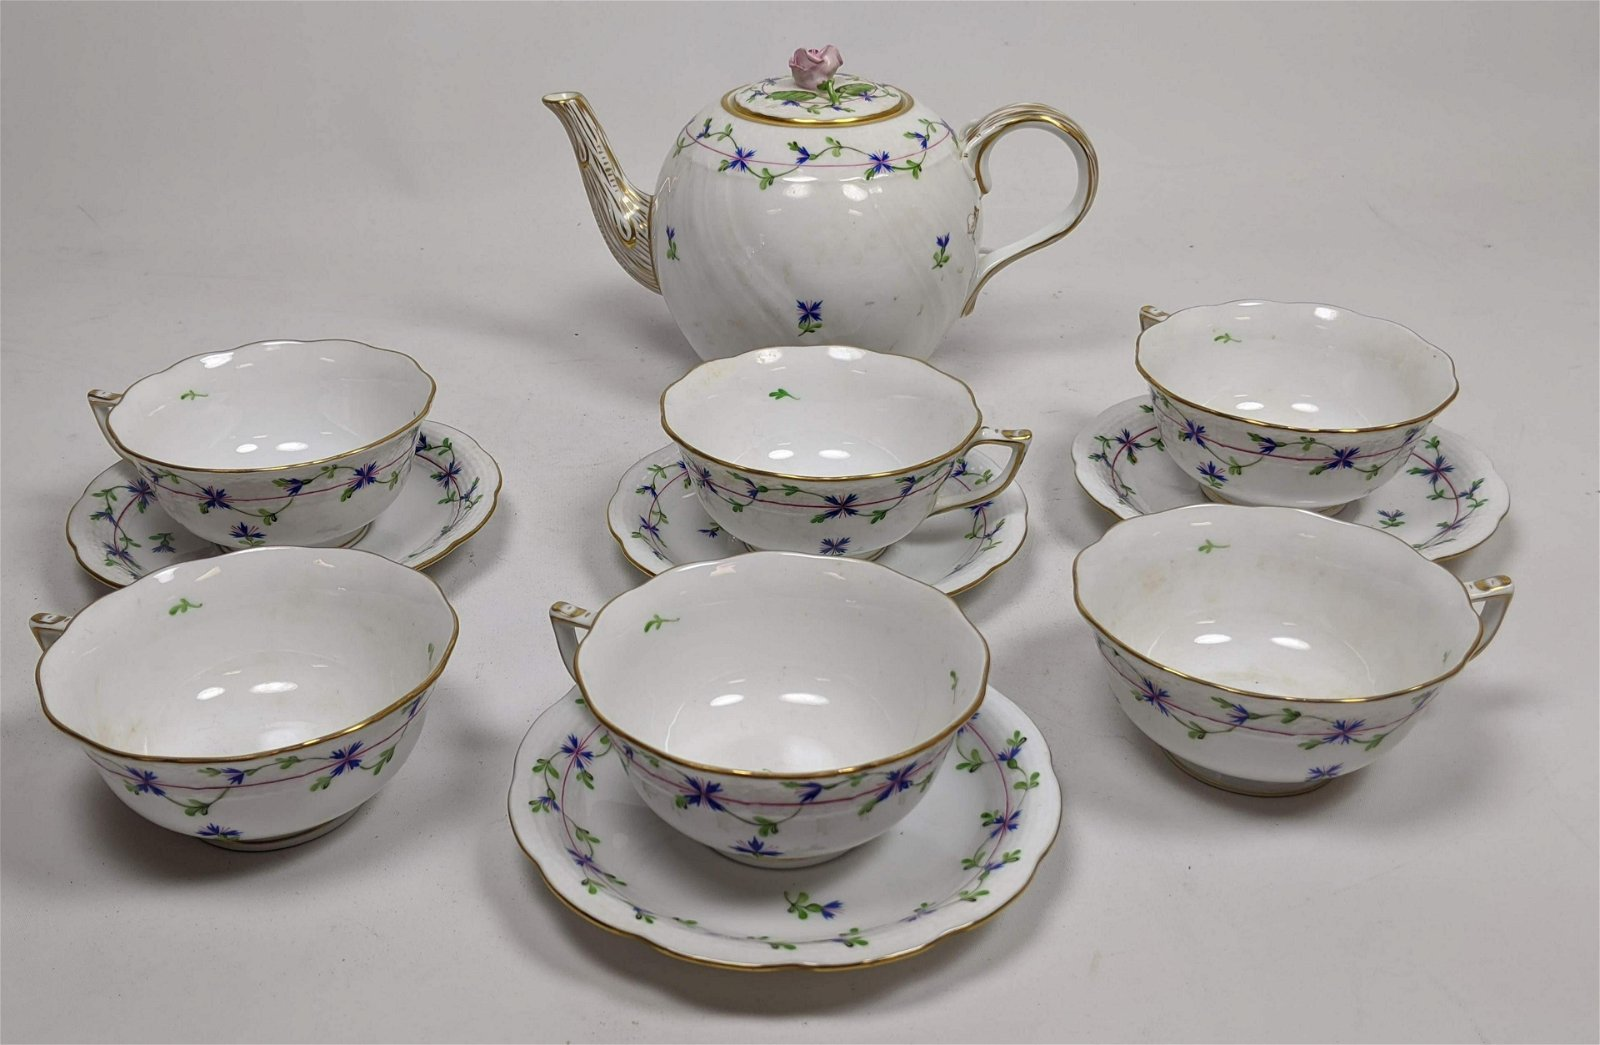 11pc HEREND Hungary Porcelain Tea Set Service. Blue and